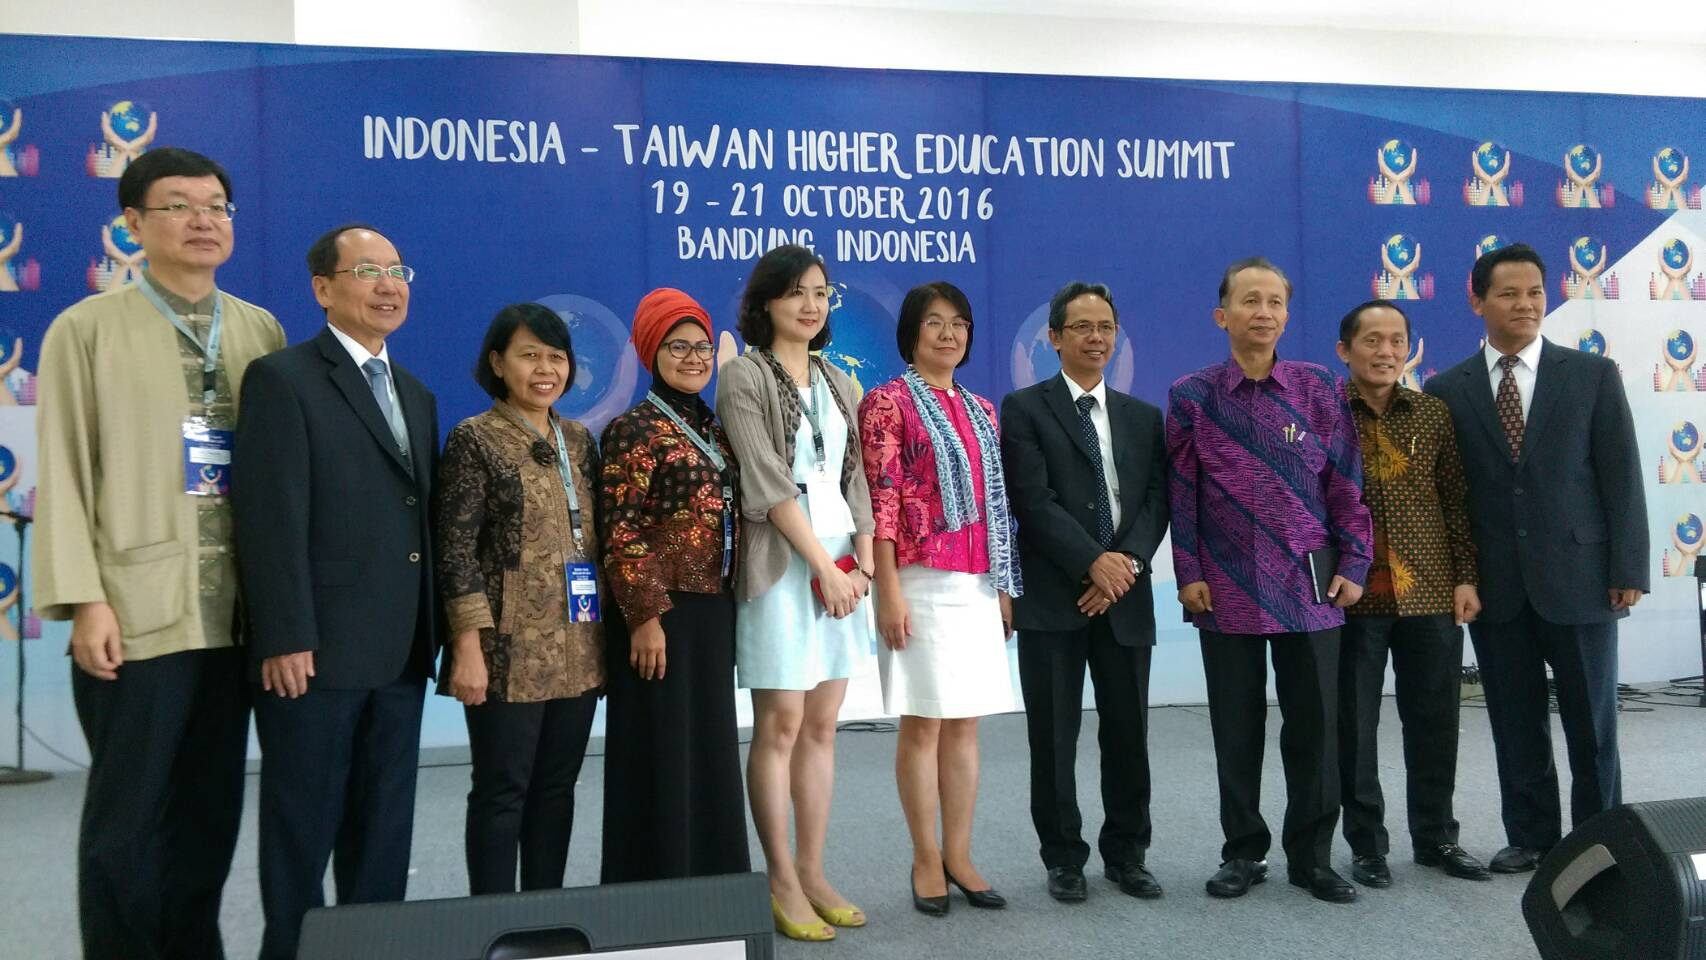 2016 Indonesia-Taiwan Higher Education Forum was a success